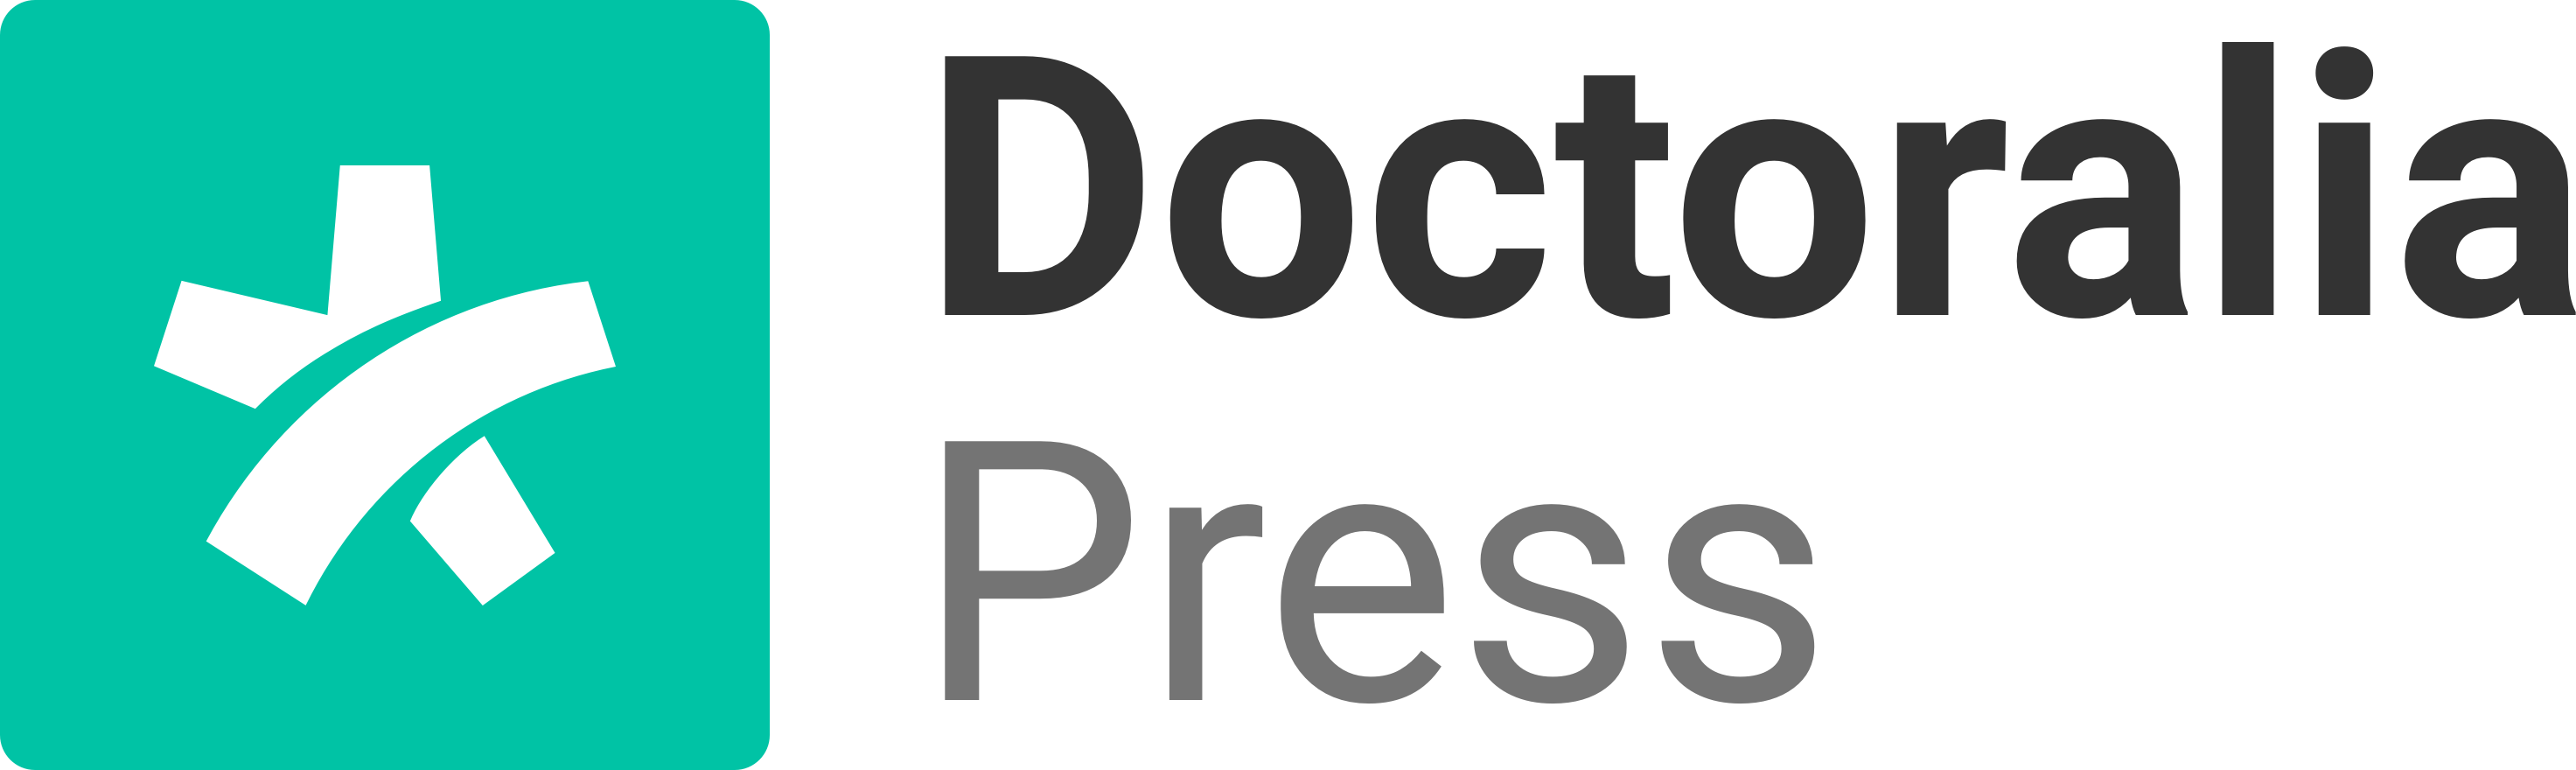 Media Room | Doctoralia logo